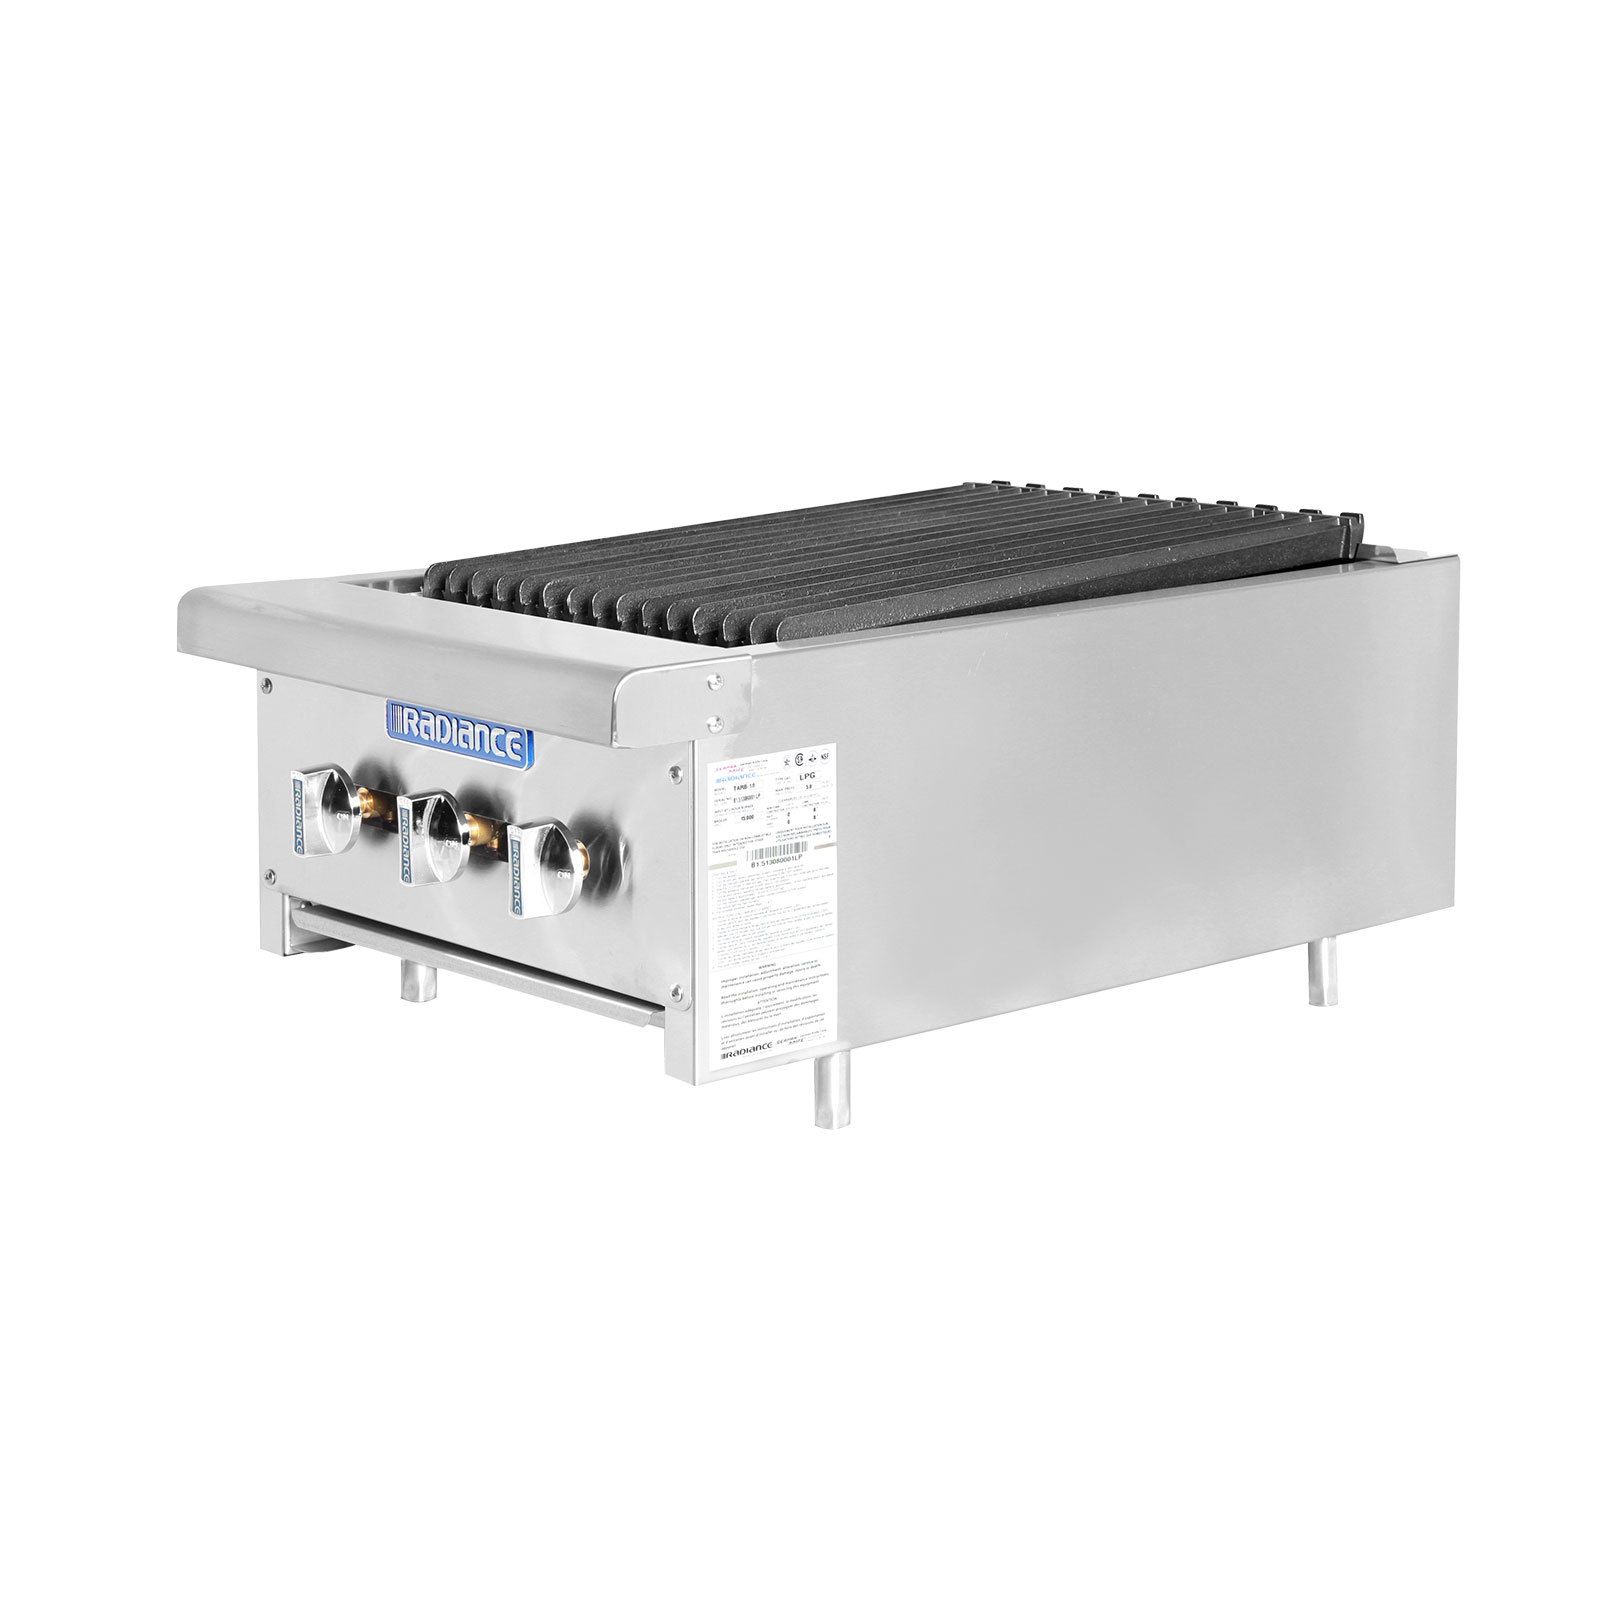 Turbo Air TARB-18 charbroiler, gas, countertop